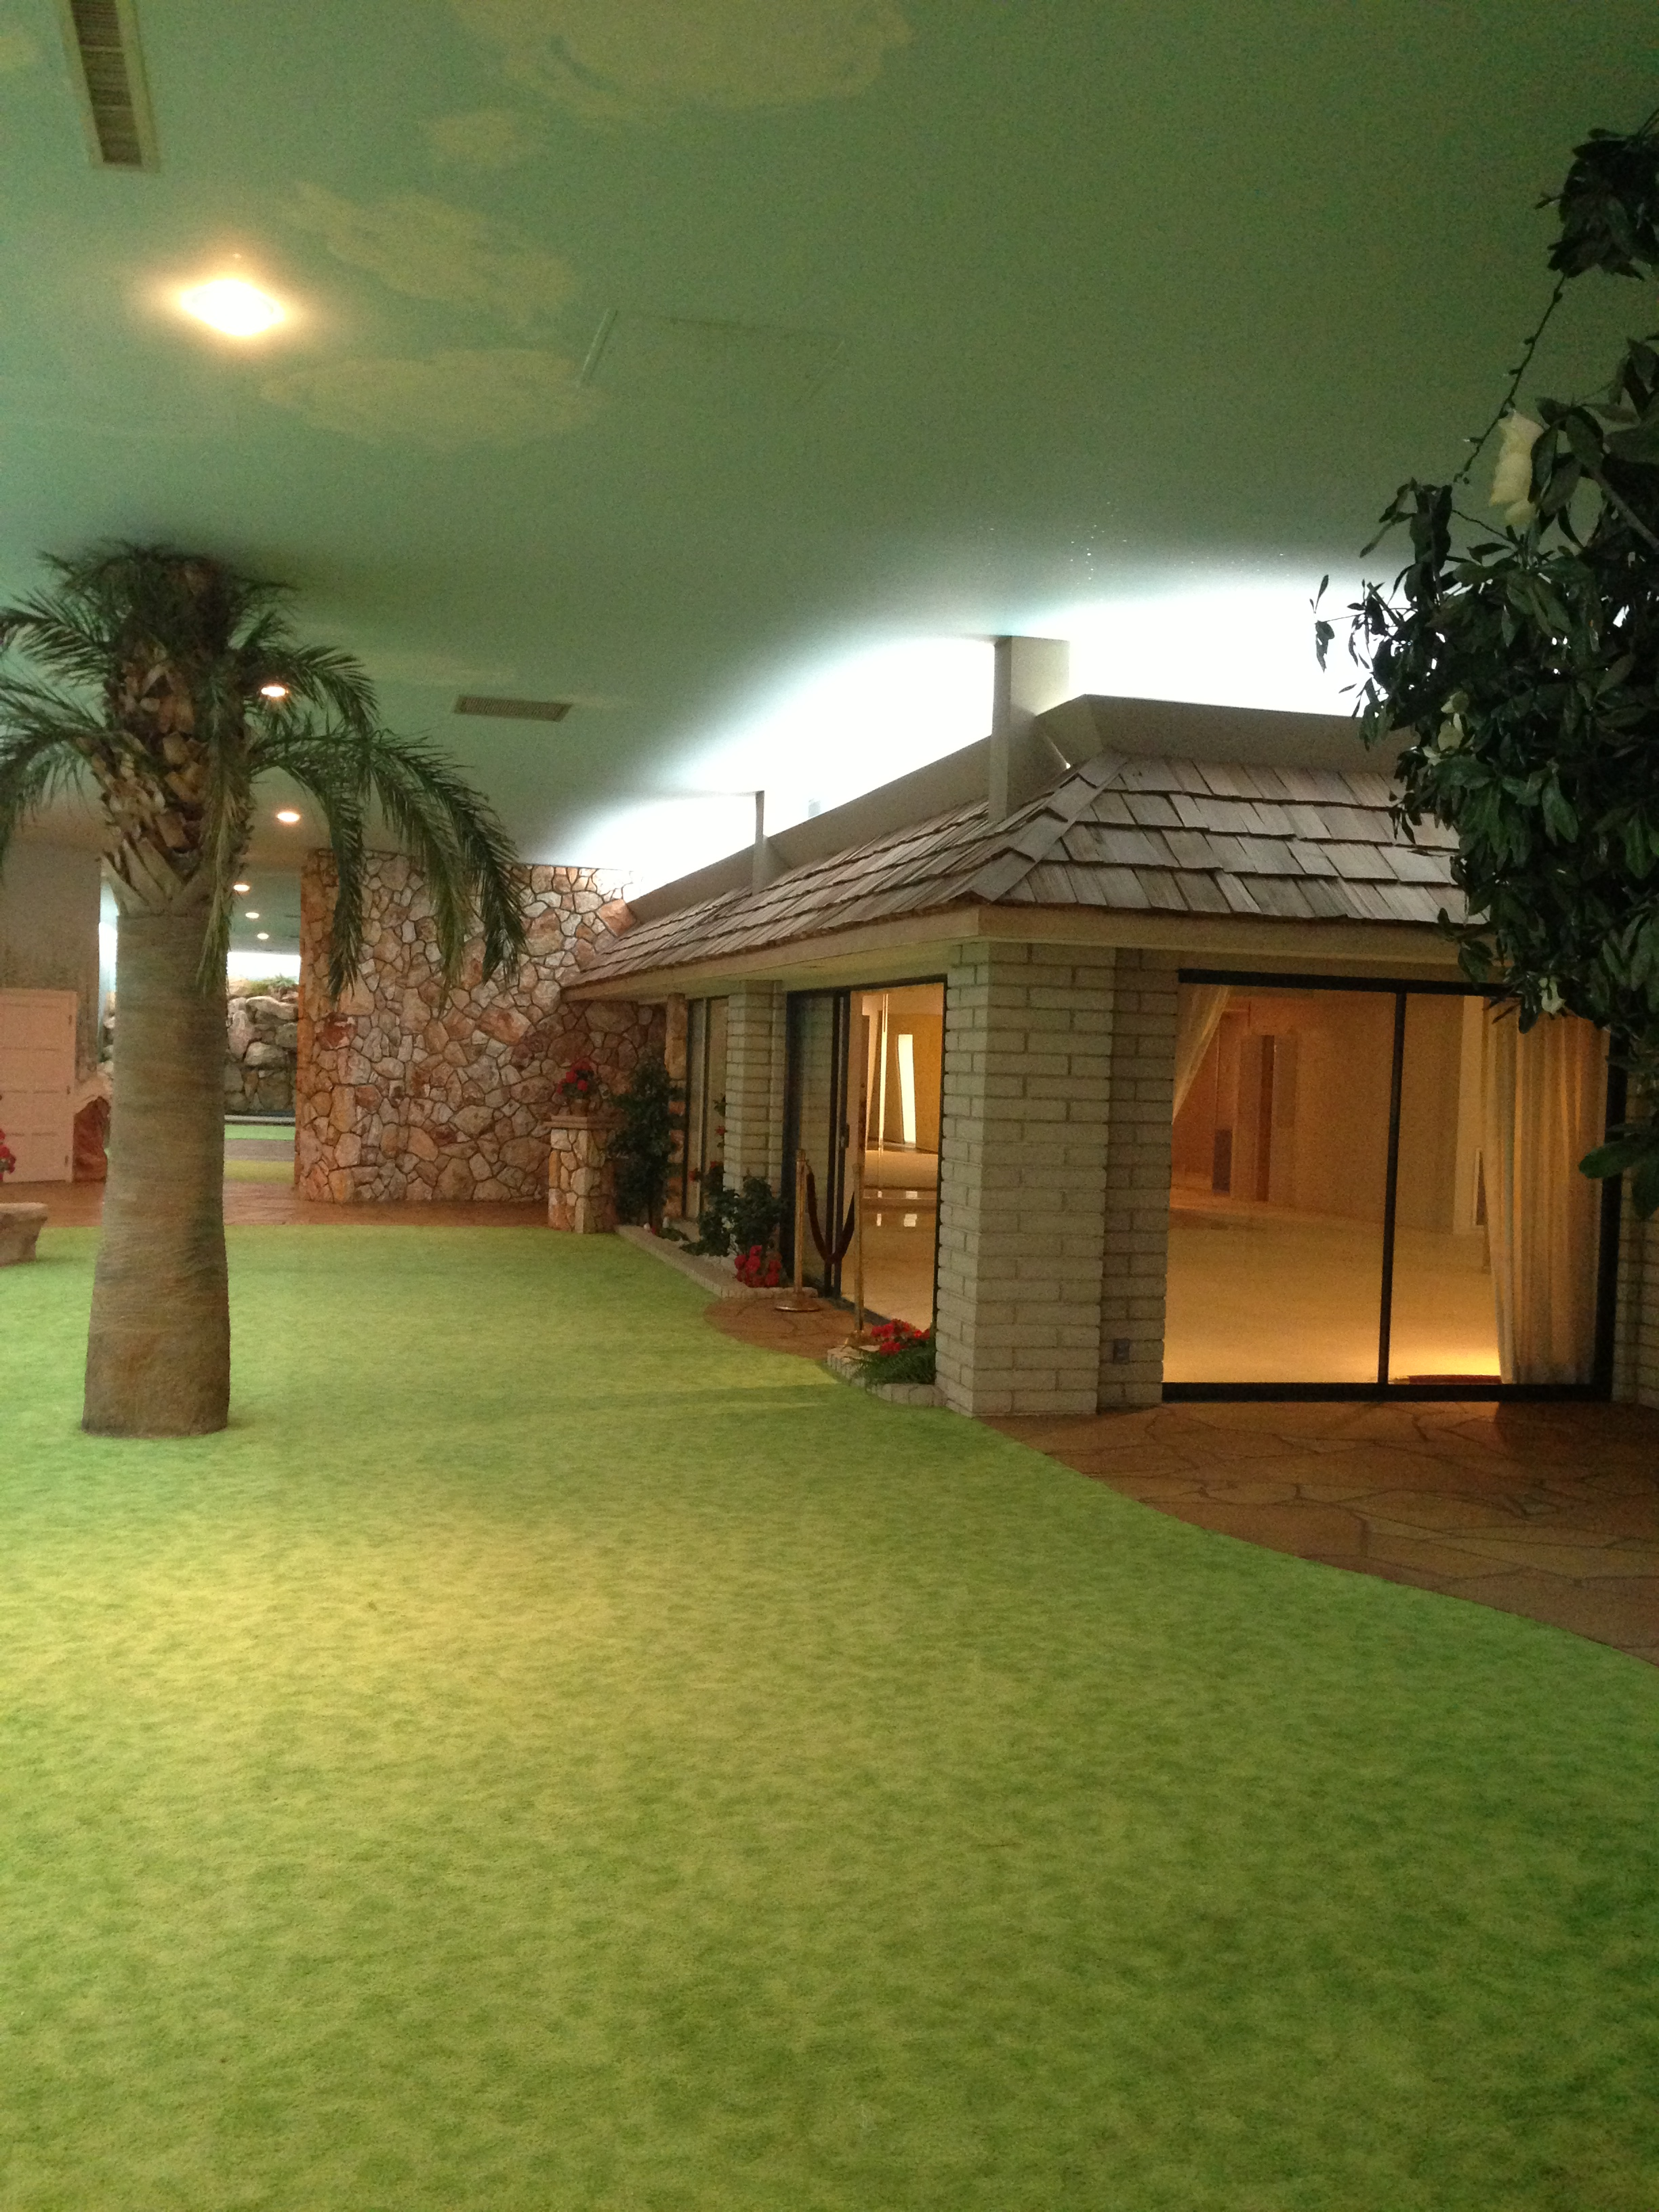 Homes For Sale With Underground Bunkers Joy Studio Design Gallery